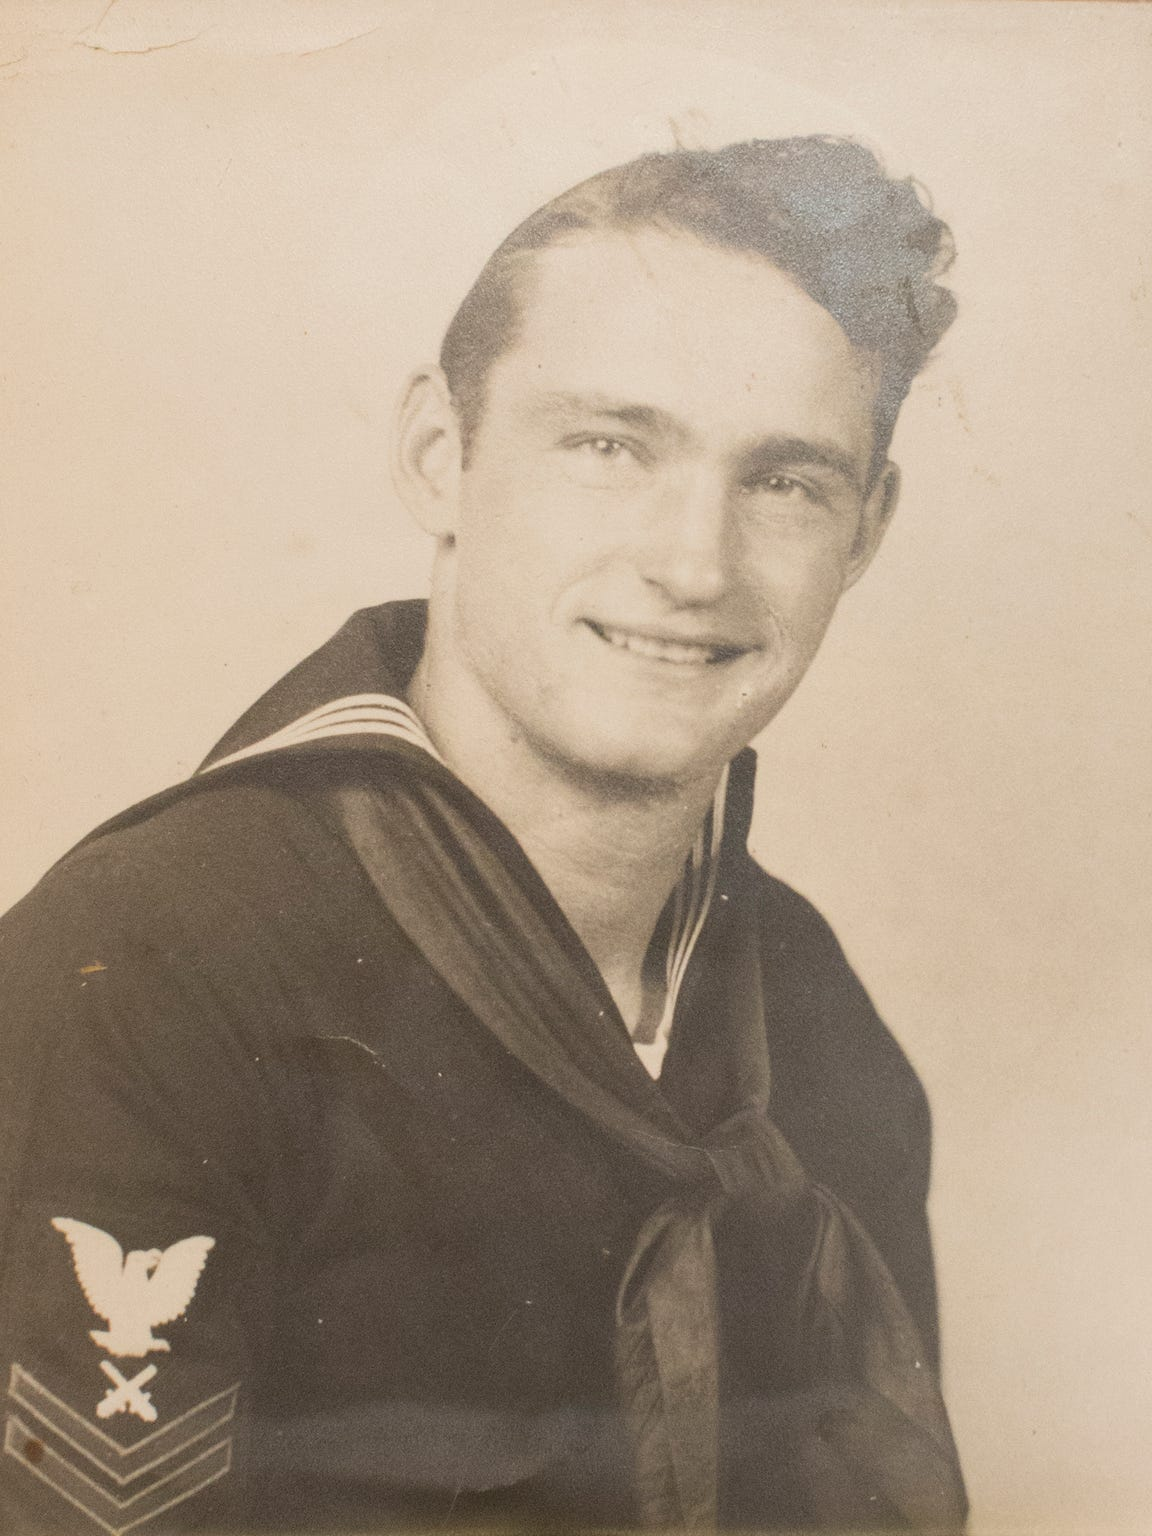 USSAZ- USS Arizona - Lonnie Cook, of Oklahoma, was